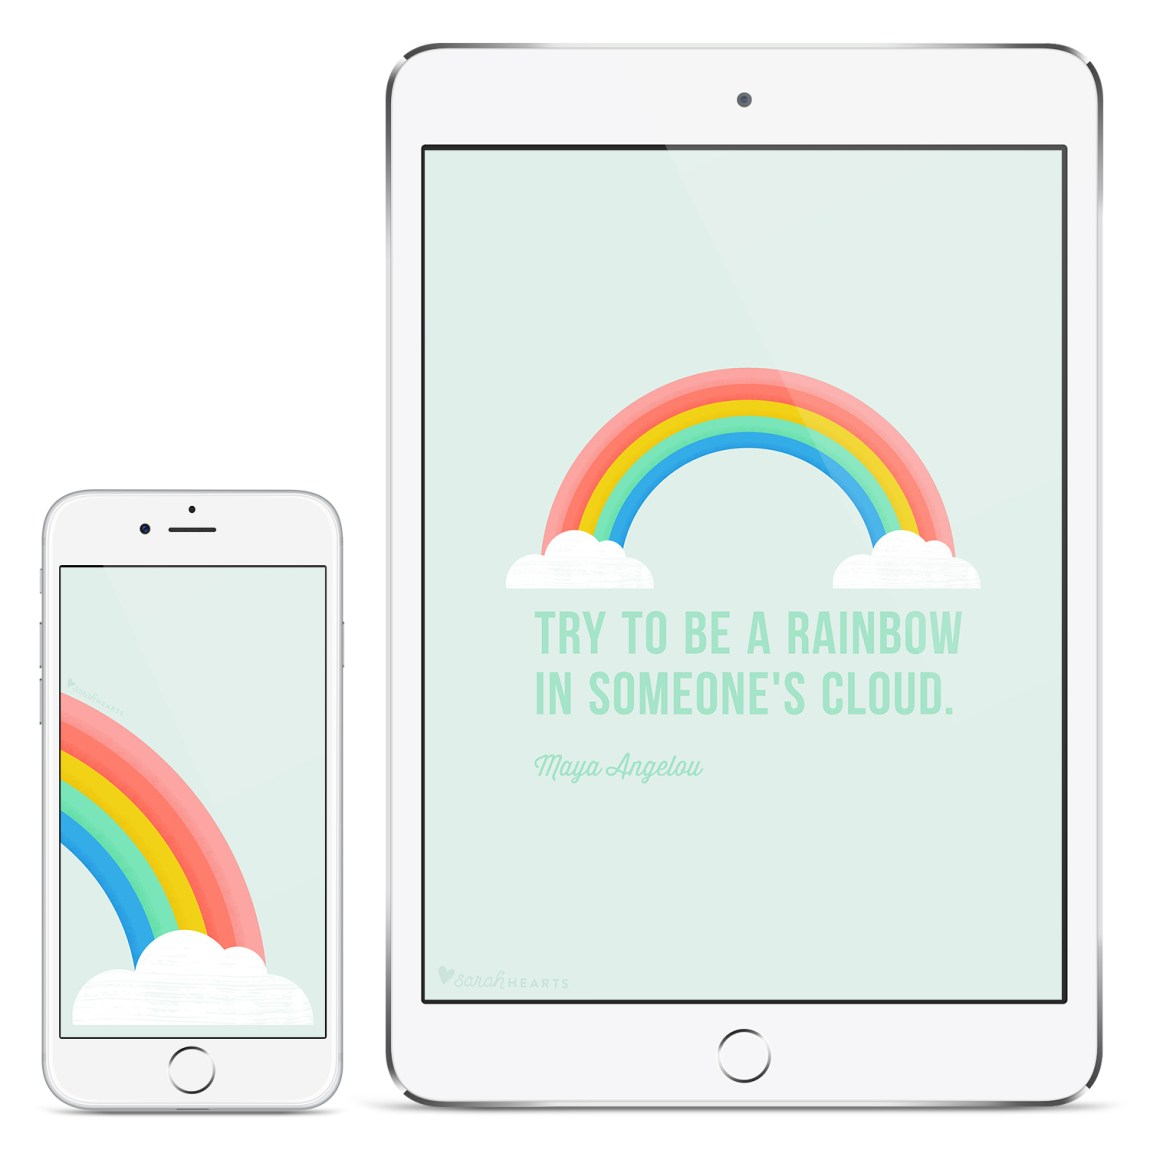 Add some cheer to your computer, phone or tablet with this free inspirational rainbow wallpaper!